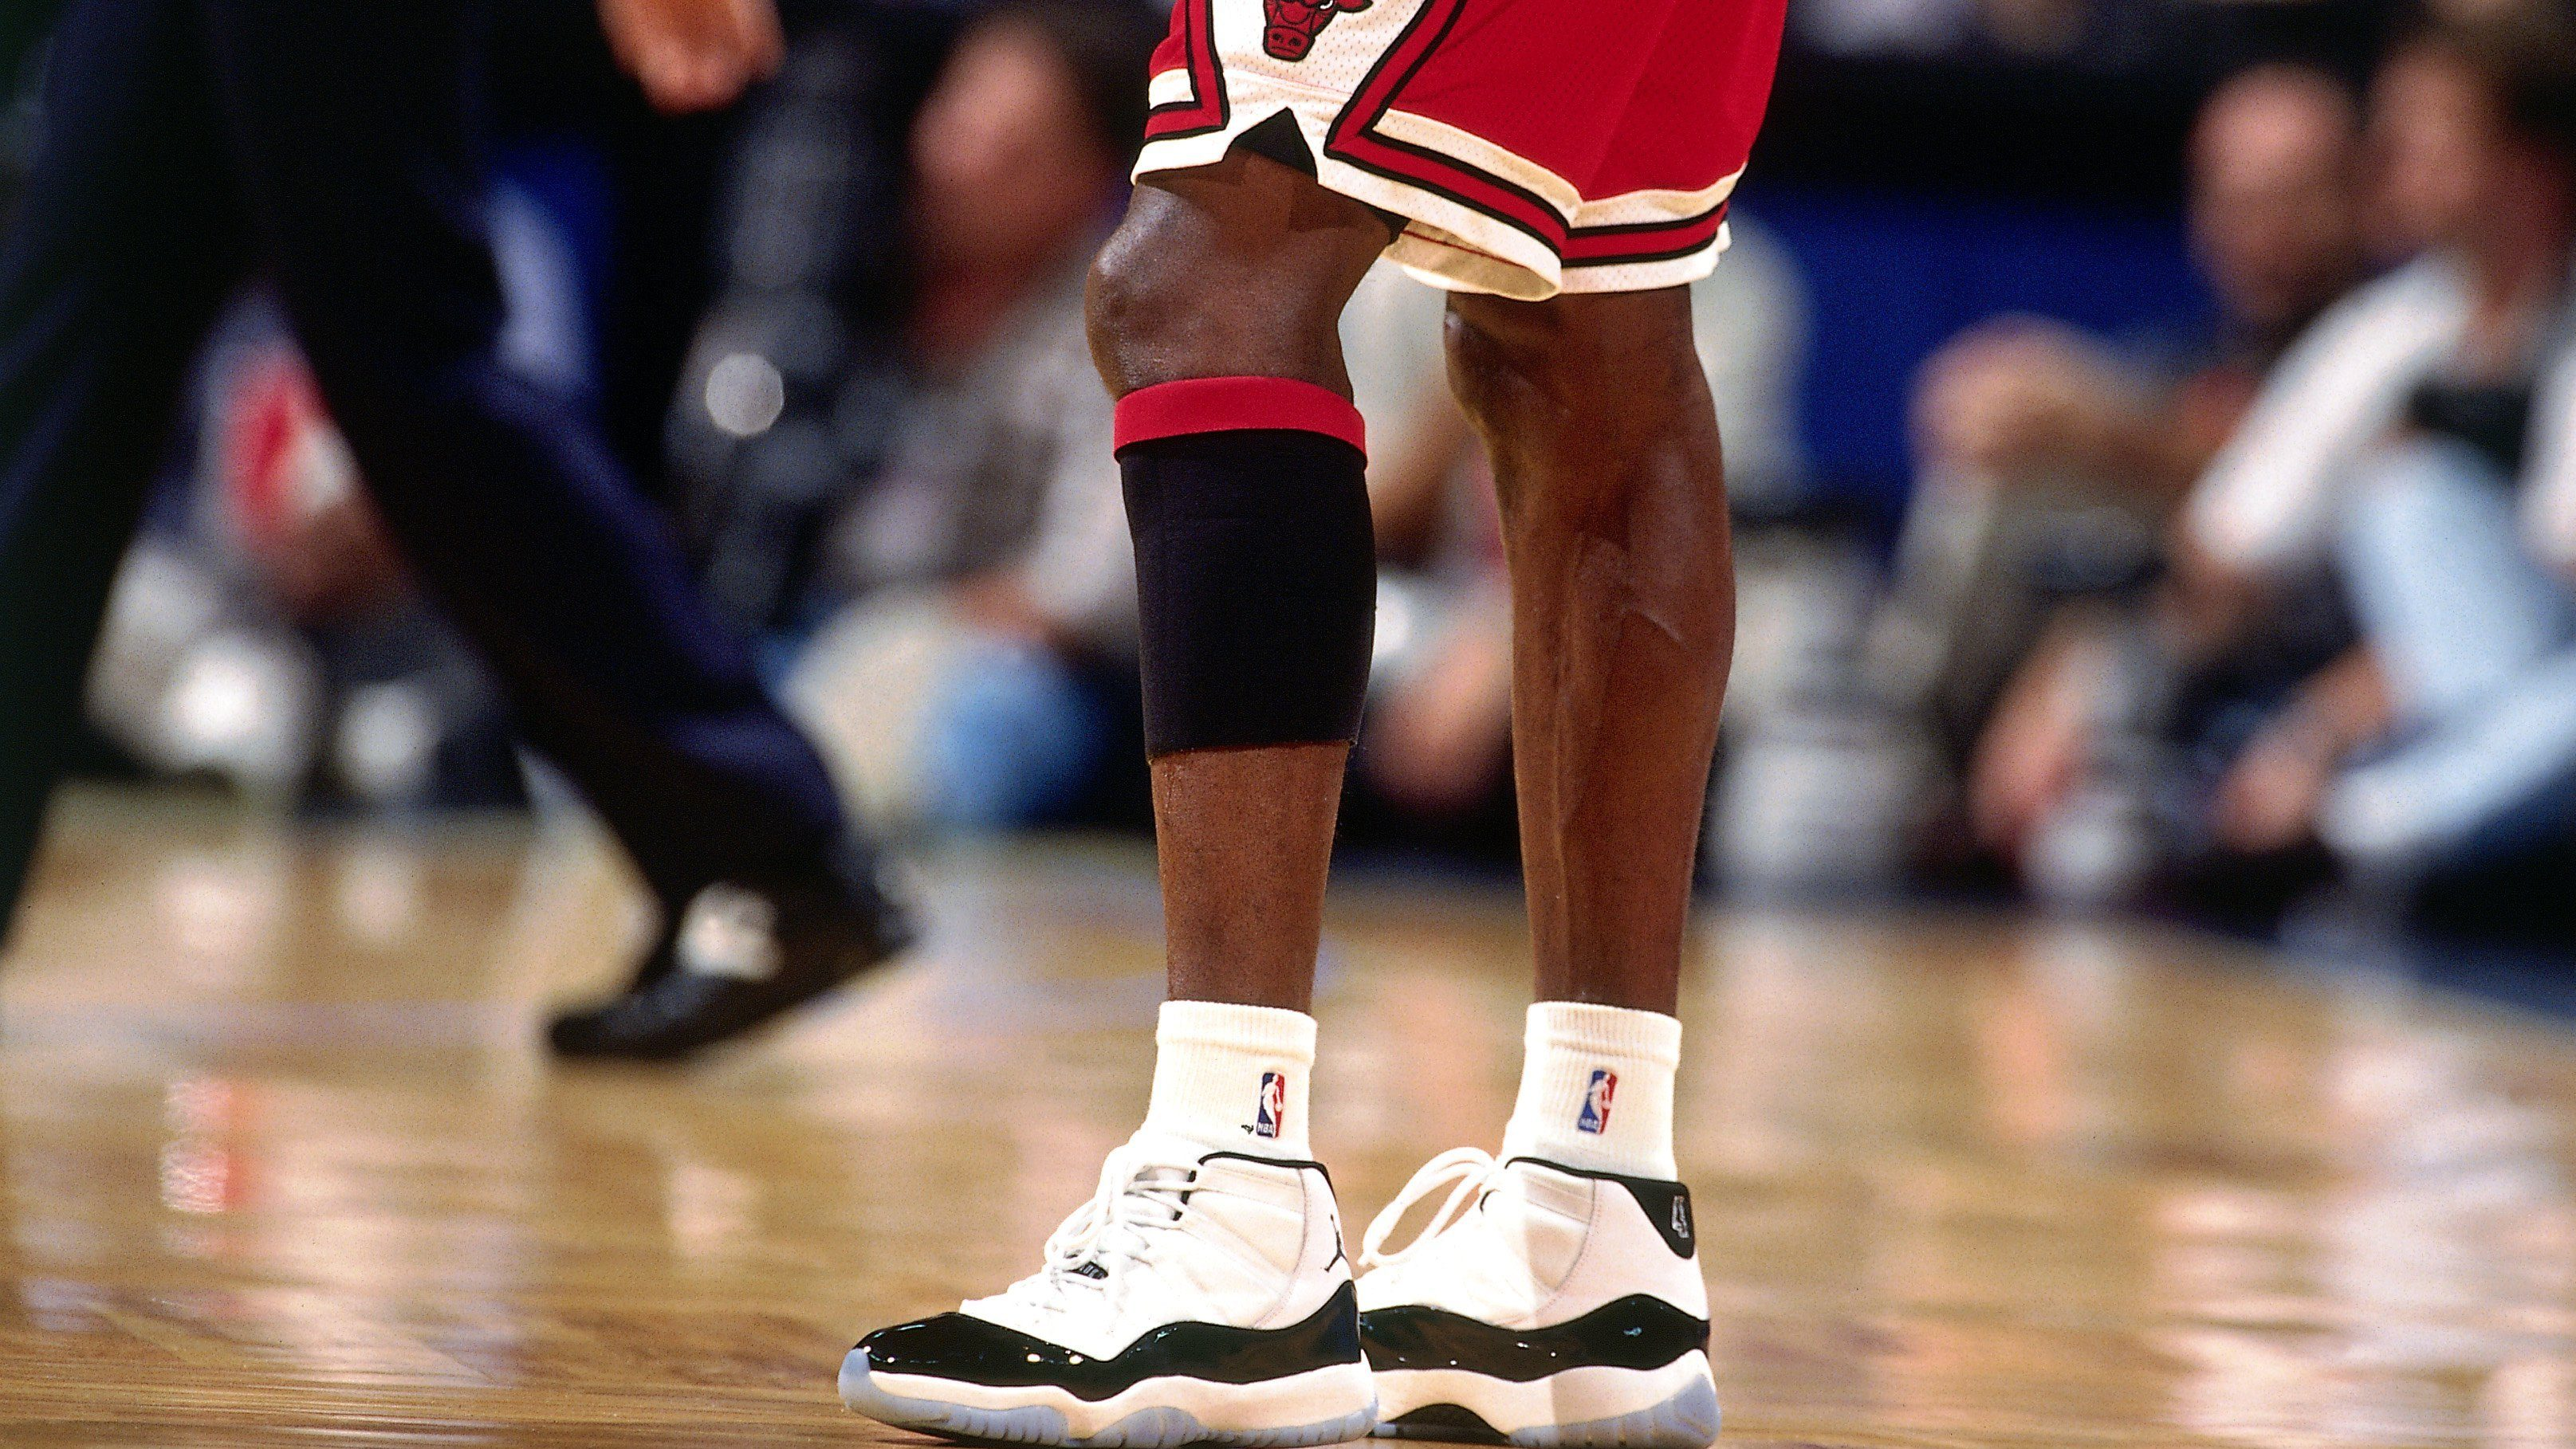 How the 'Concord' Air Jordan 11 became sneaker culture's grail